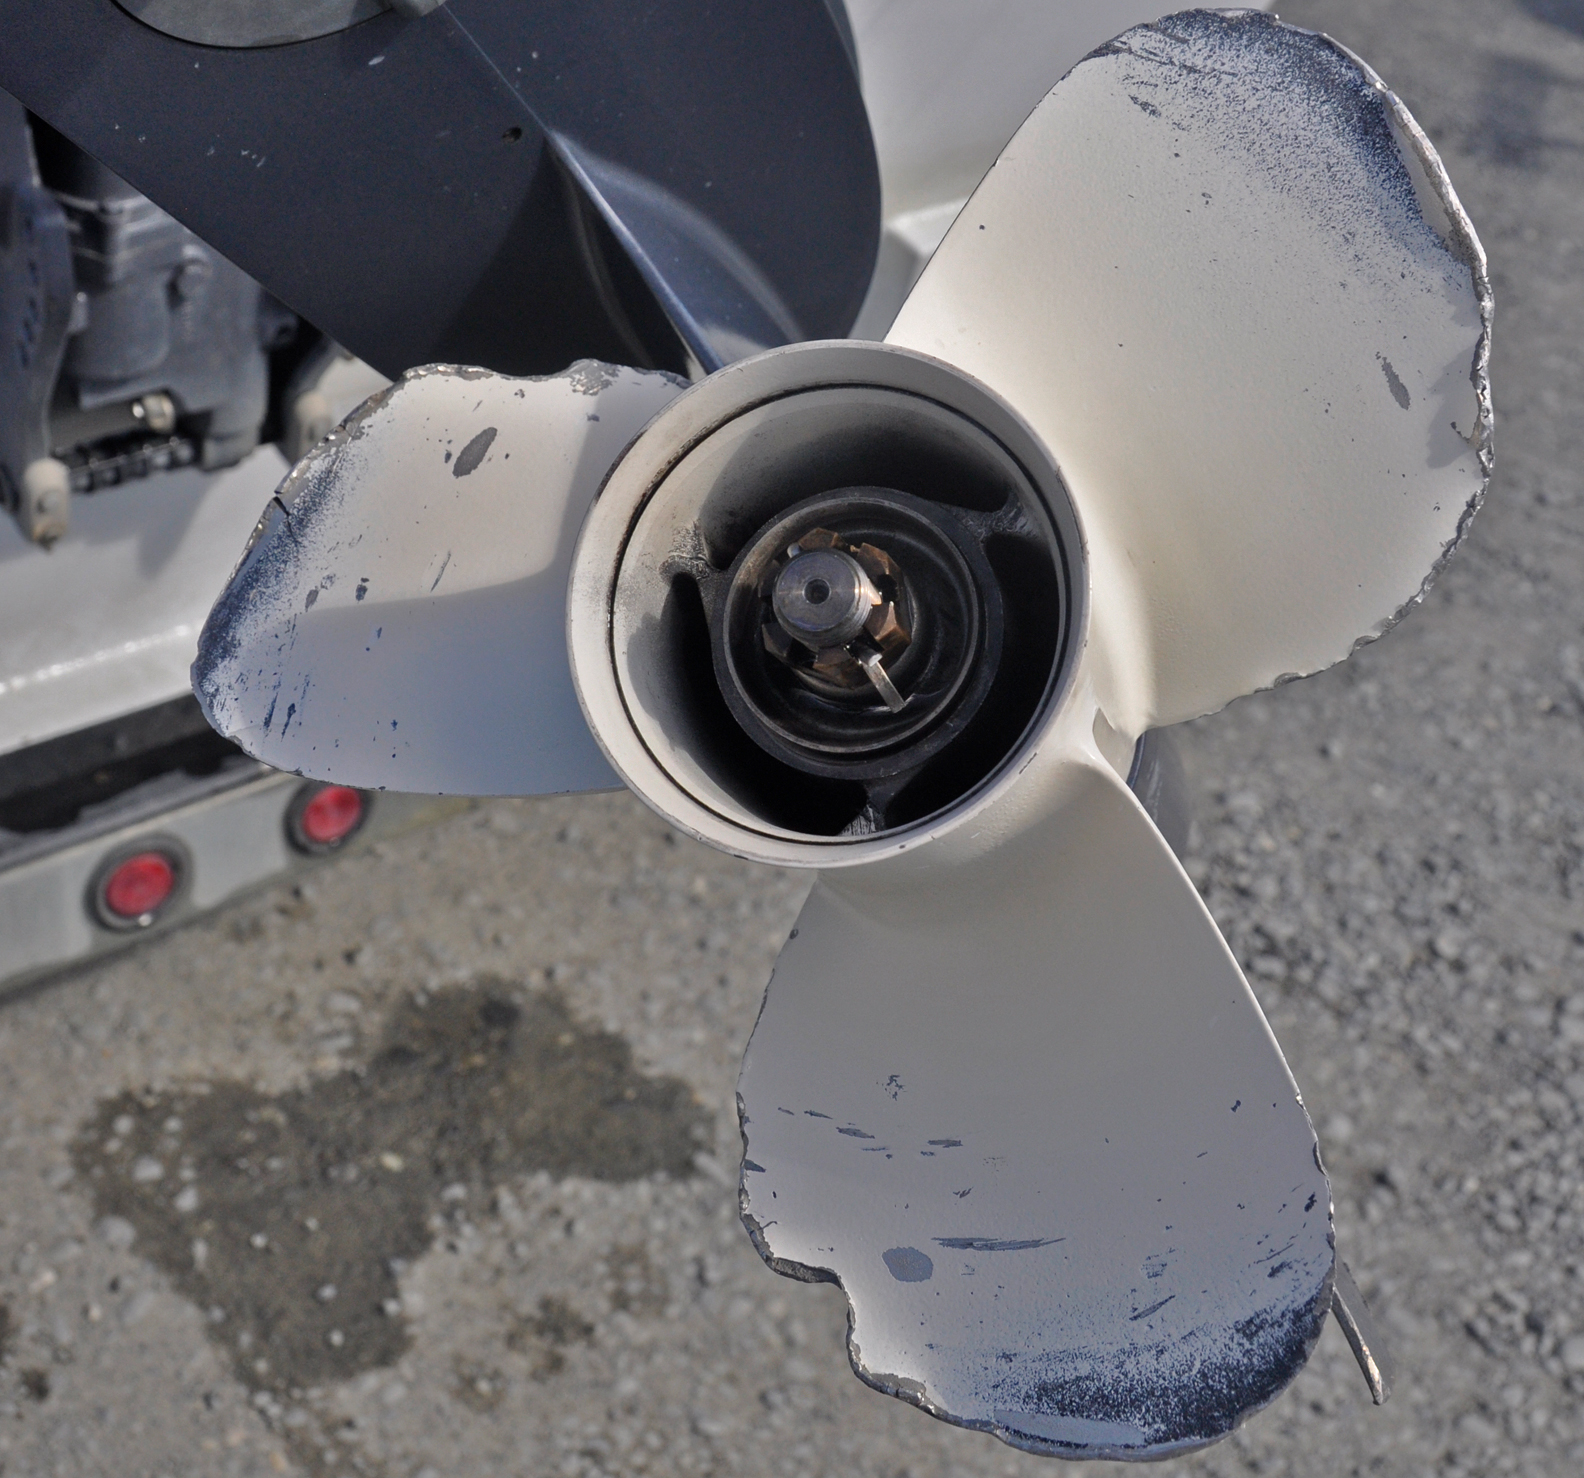 A Damaged Propeller On An Outboard Engine On A Boat